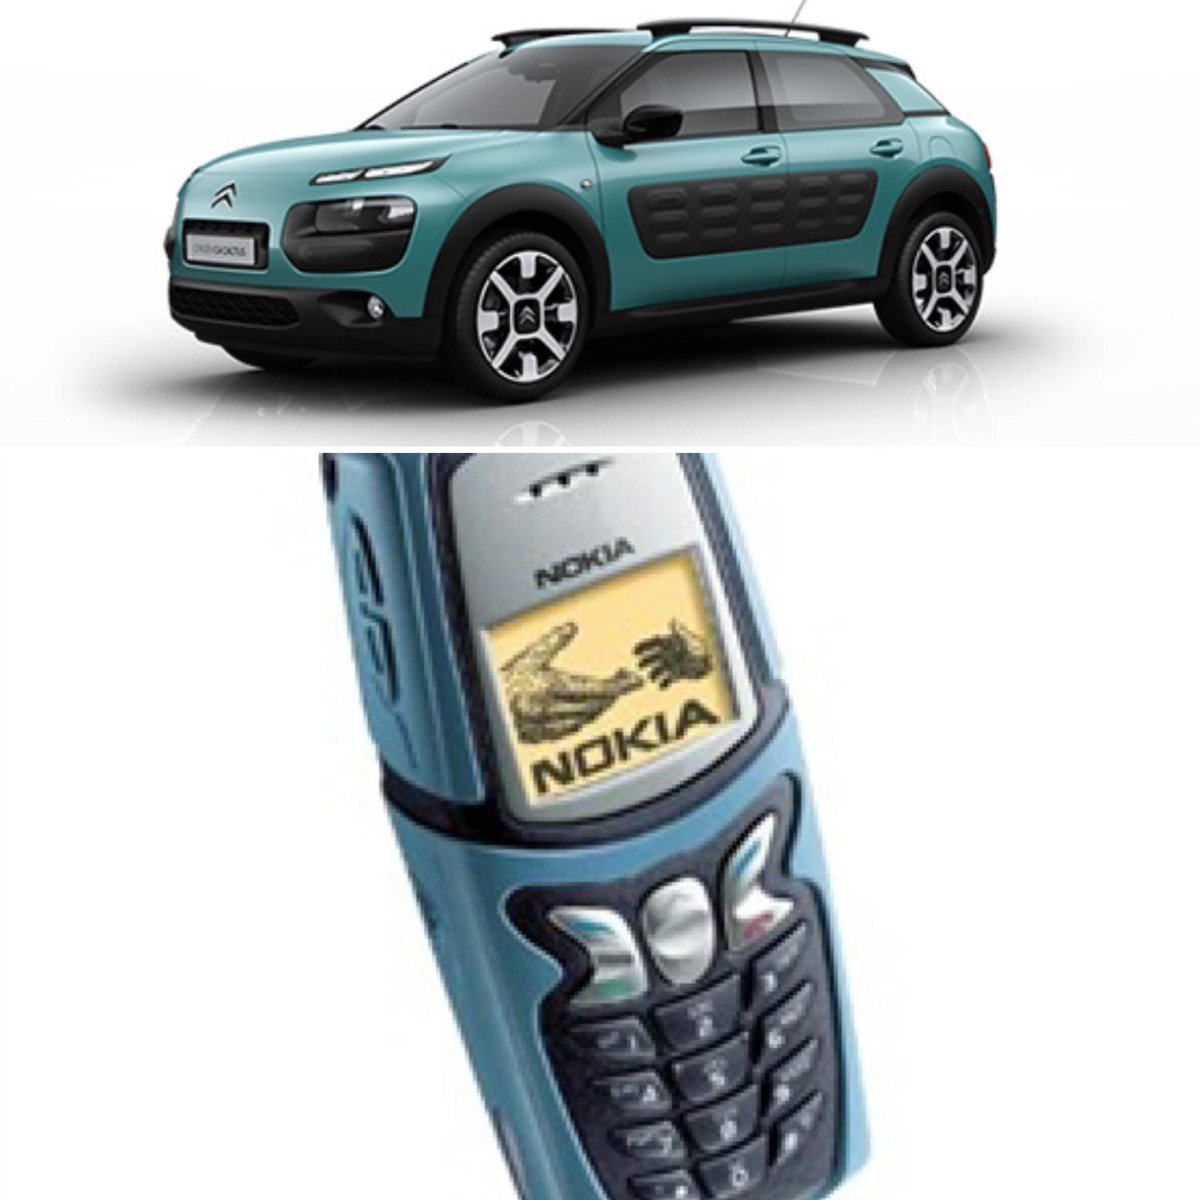 It was nice of @CitroenUK to carry on Nokia's legacy wasn't it? via @DMCSTK #C4Cactus #5210 http://t.co/8ymsWVmpbb